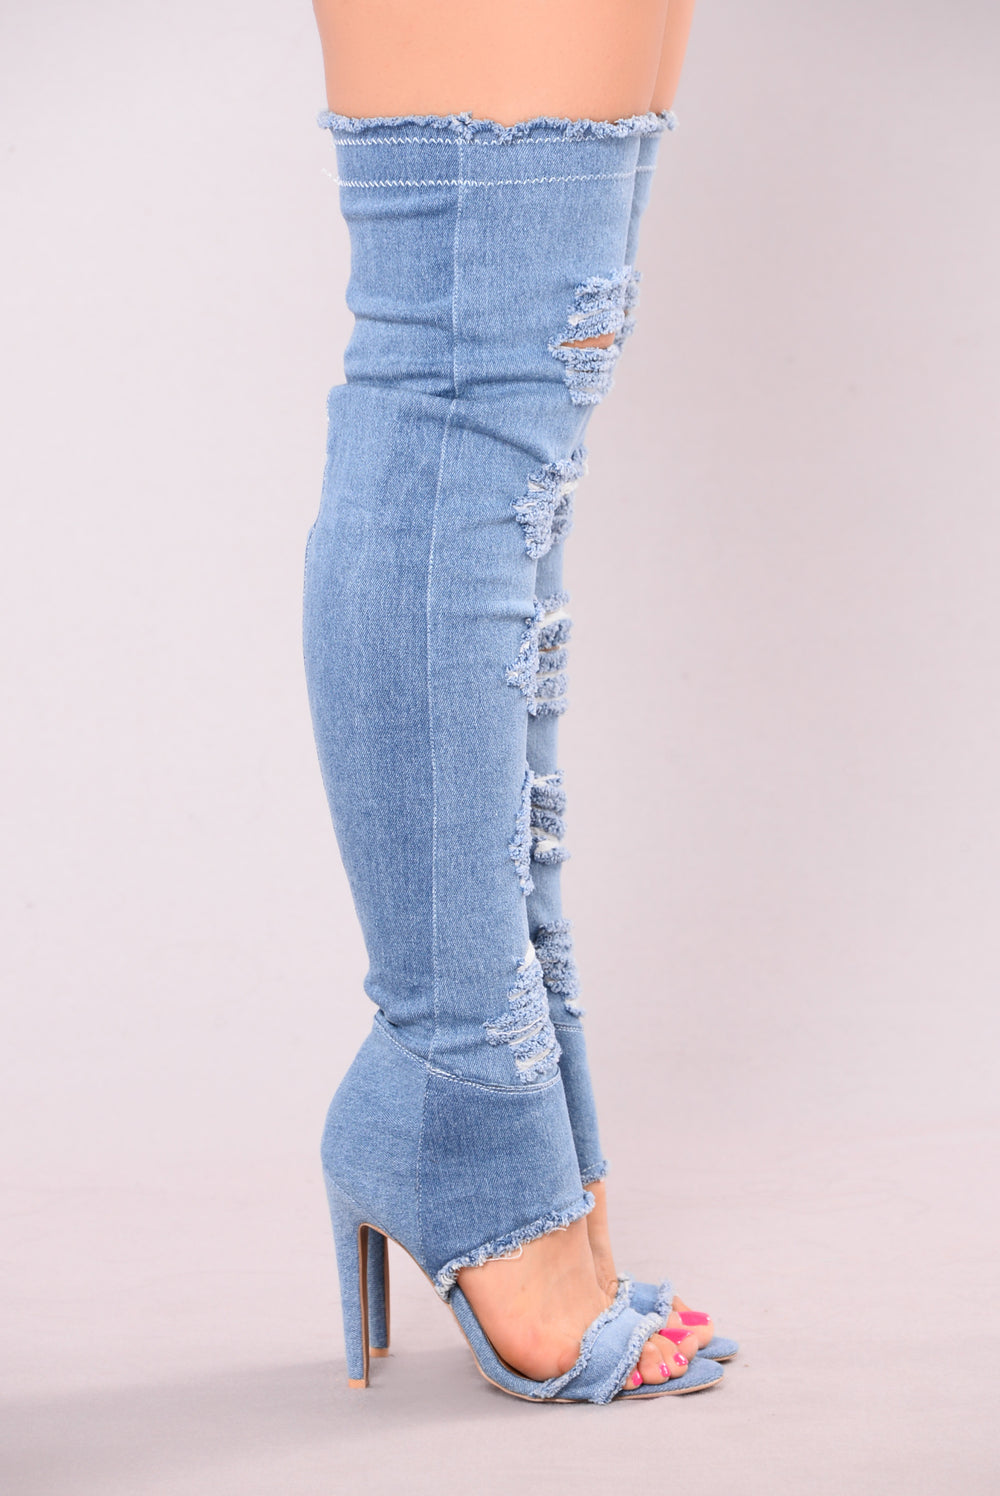 Darlene Denim Heel Boot - Light Denim